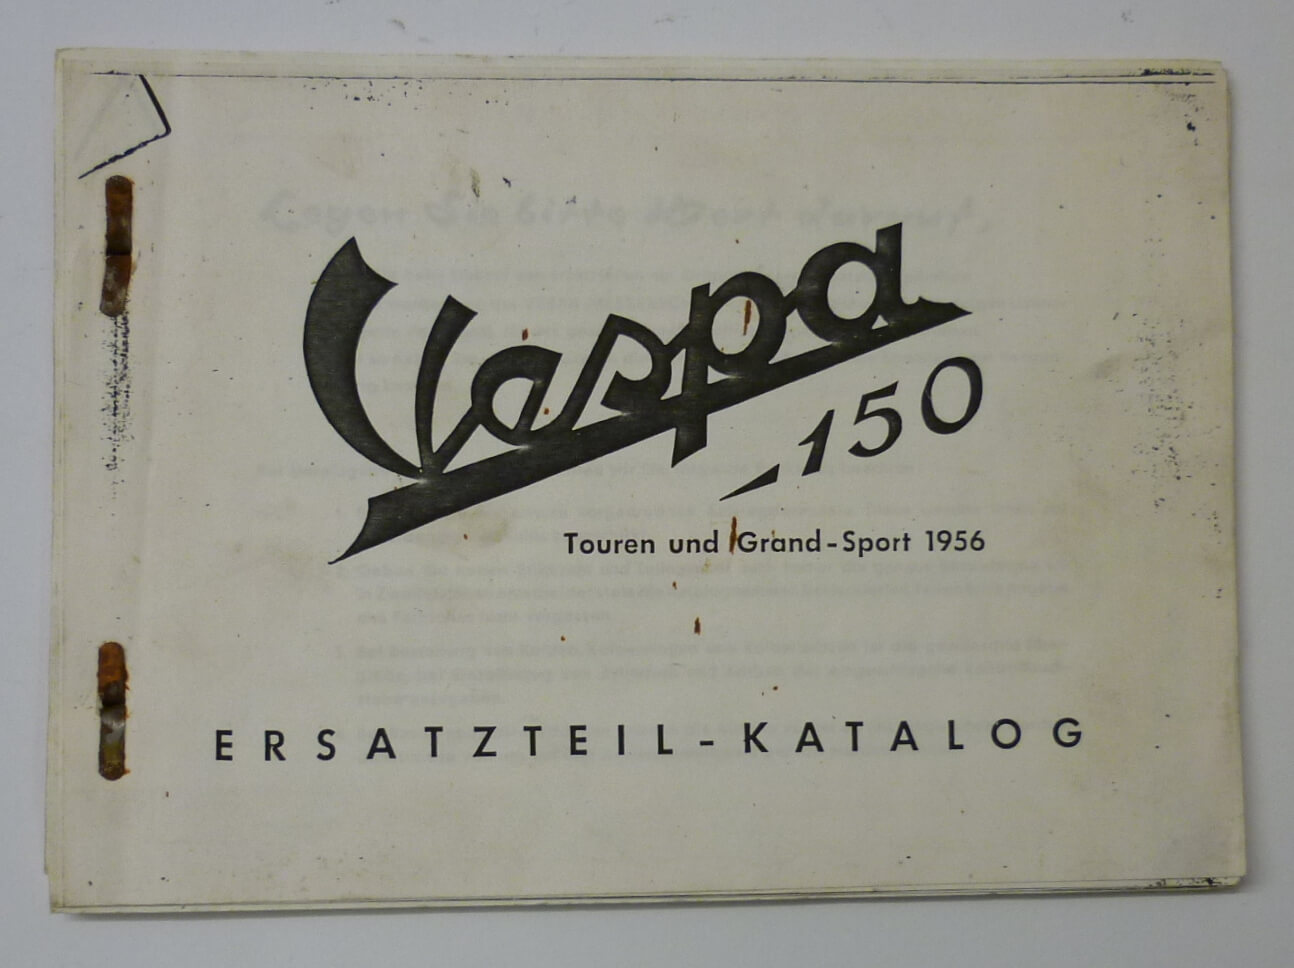 Spare parts catalogue, Vespa 150 Touren und Grand Sport 1956, used